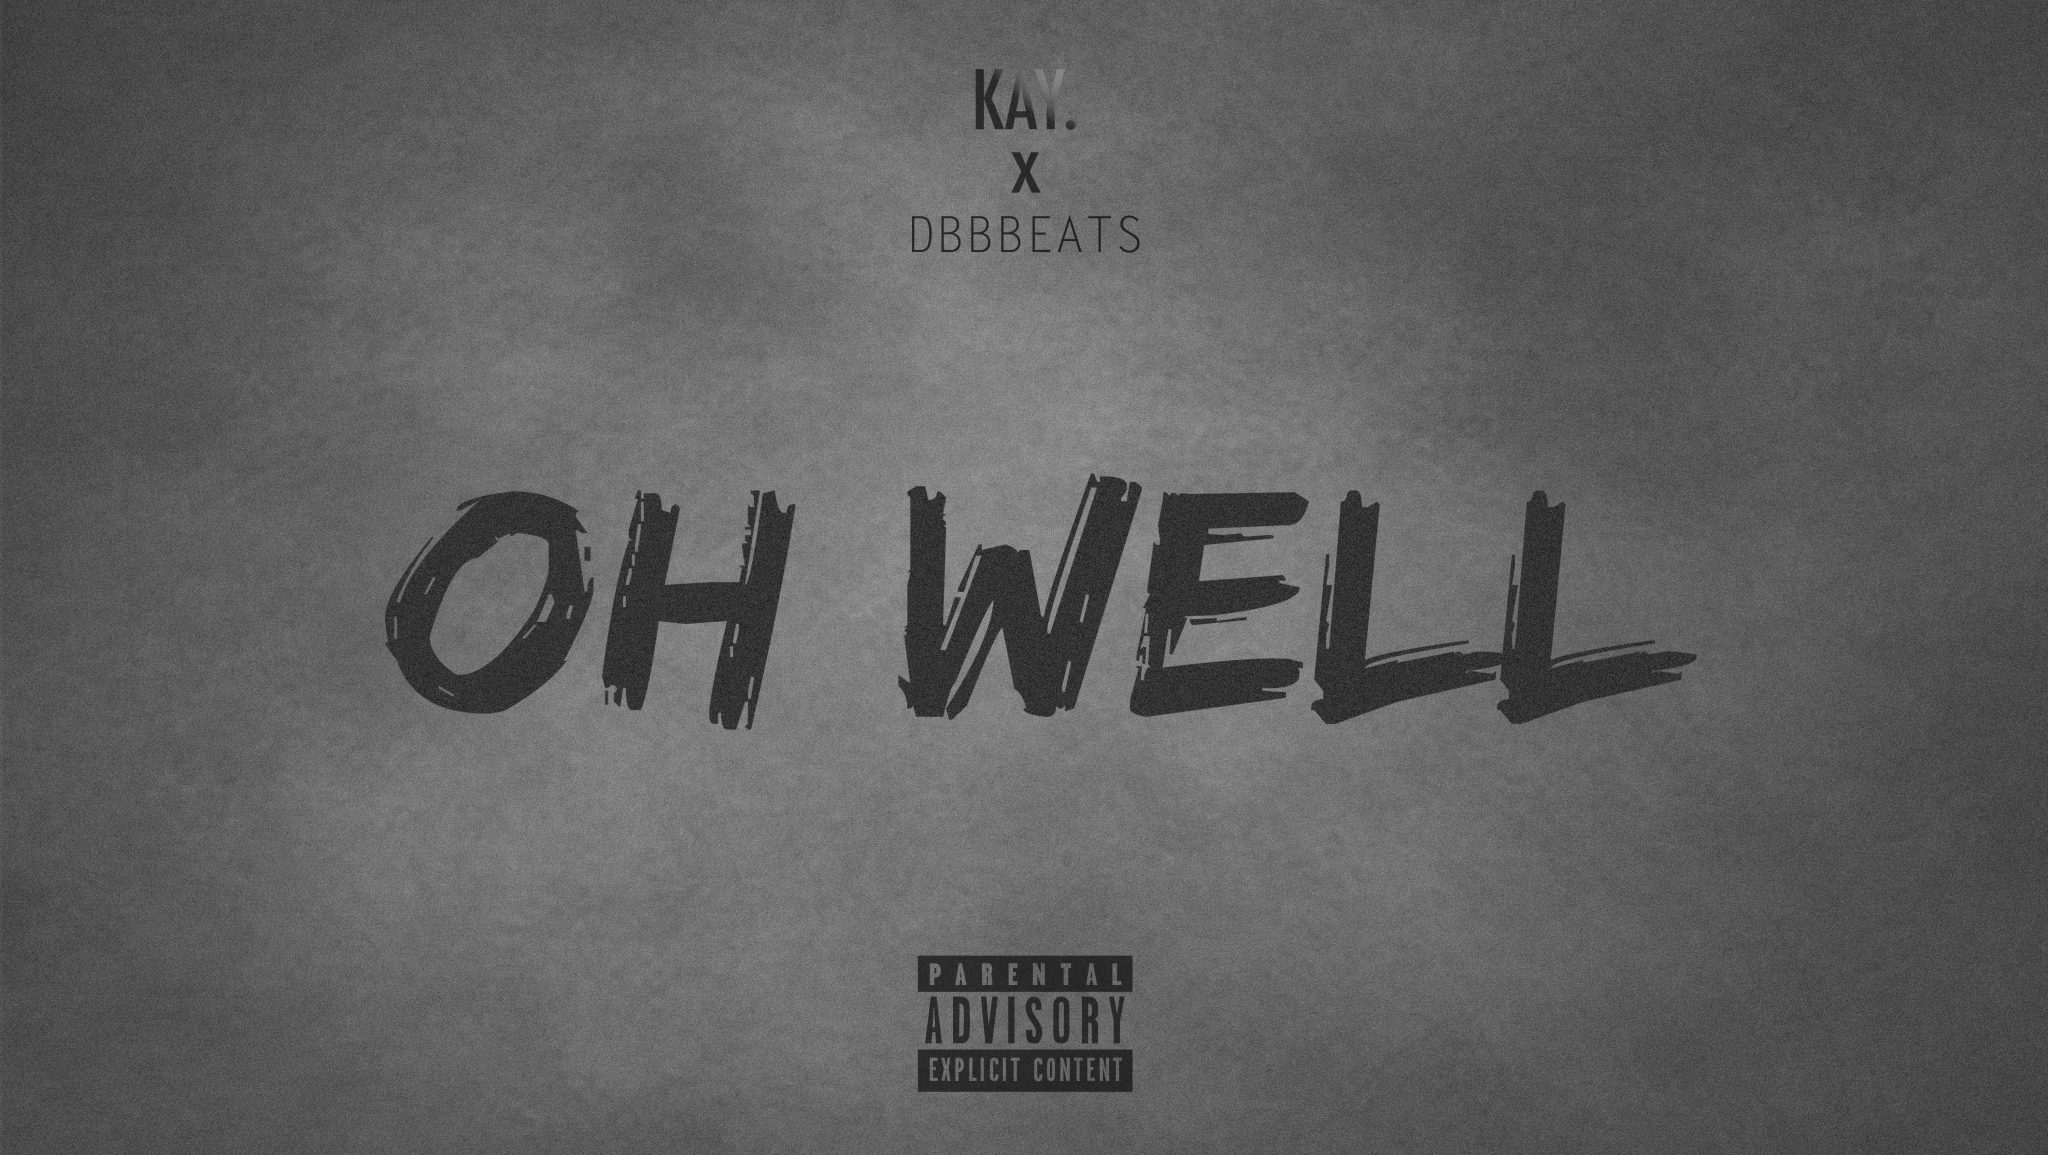 KAY. – Oh Well